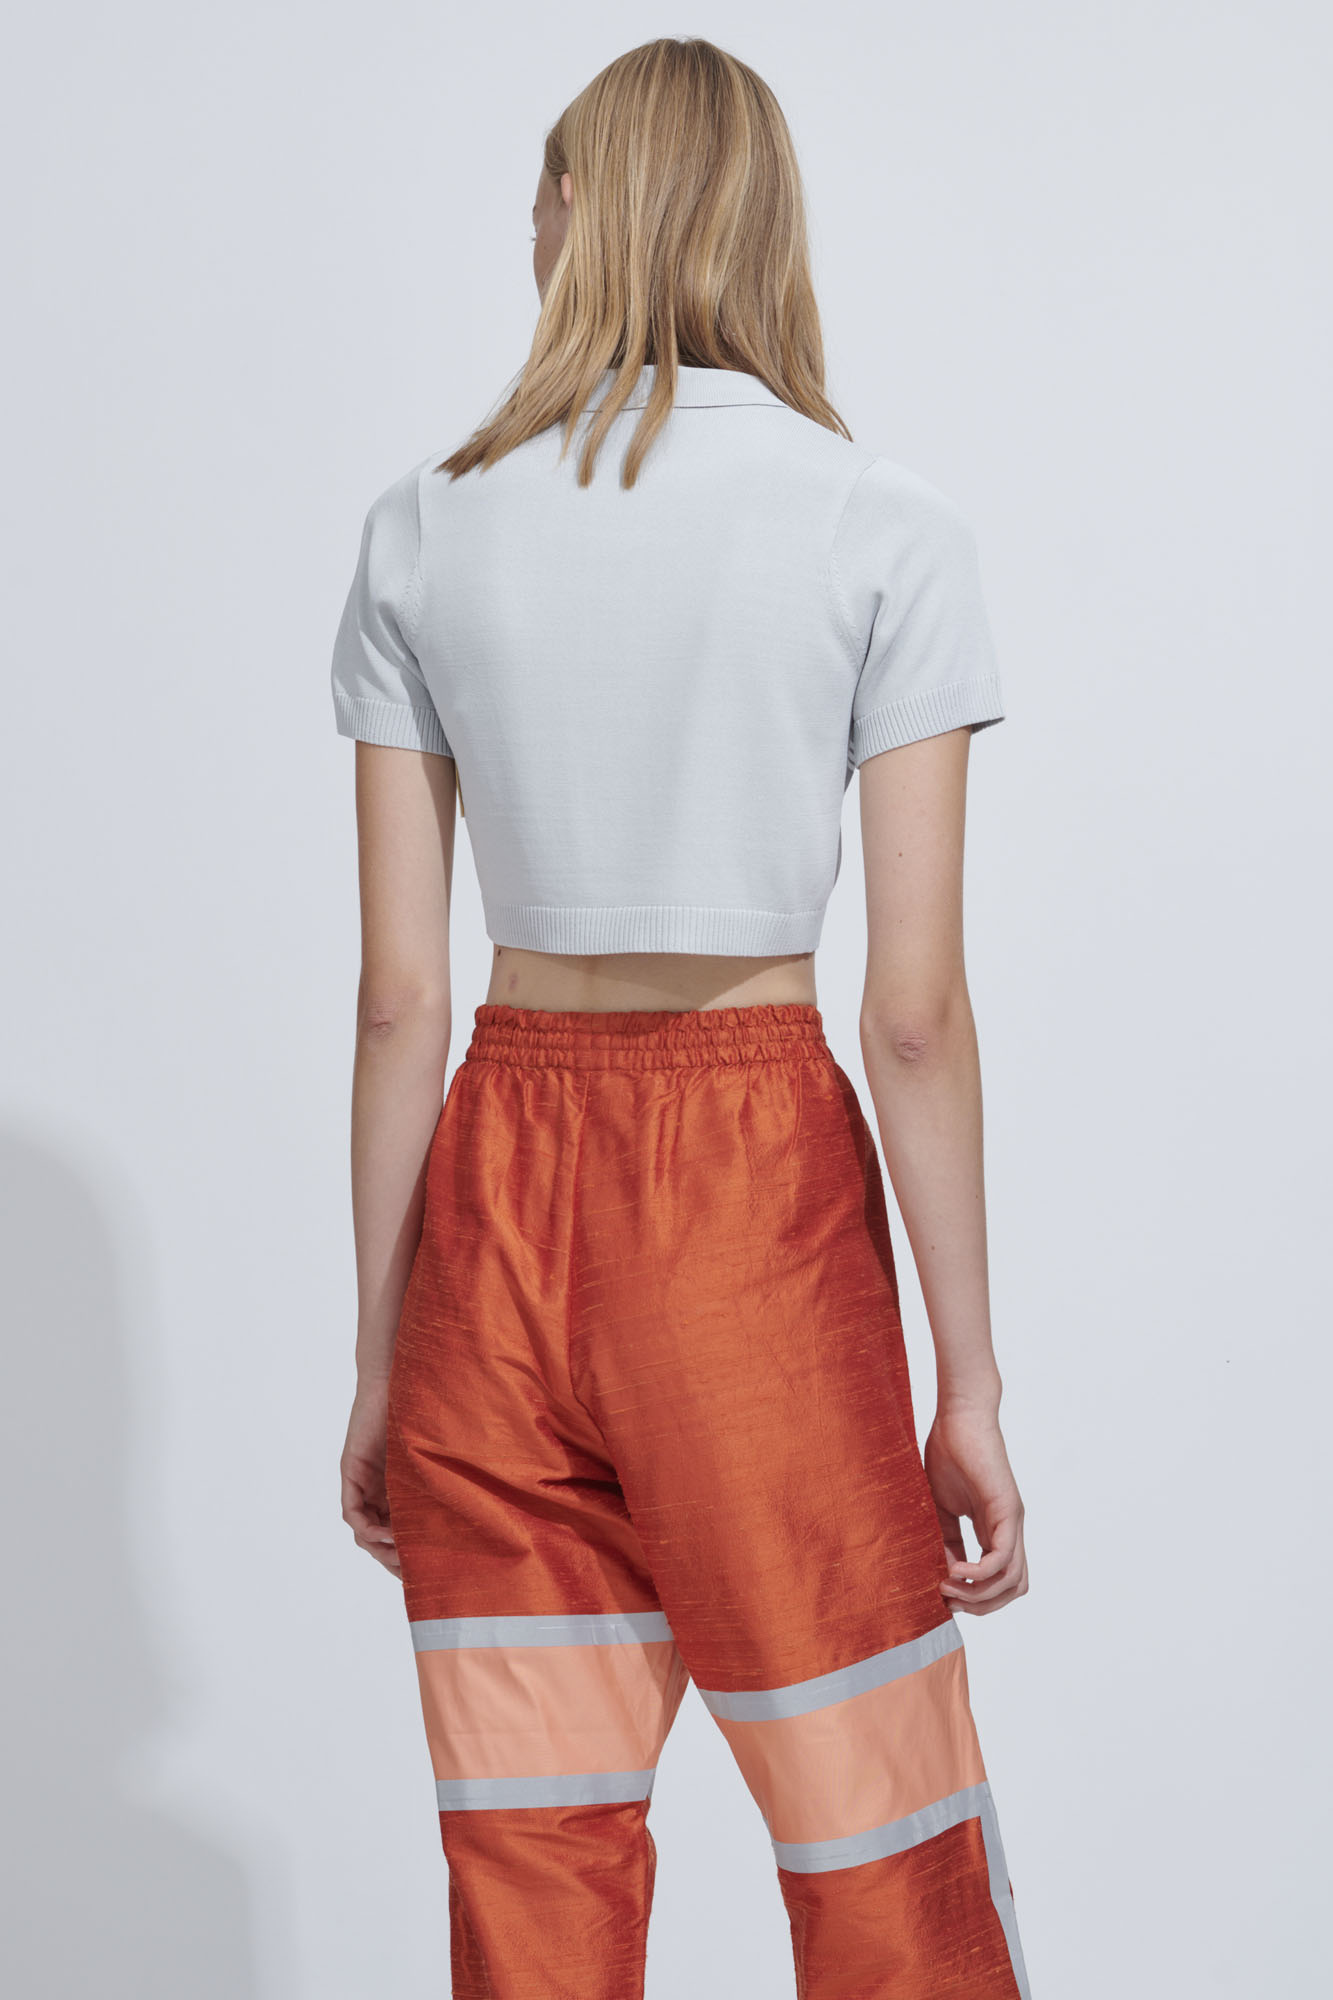 48792a12 CROPPED POLO TEE - Astrid Andersen Aps